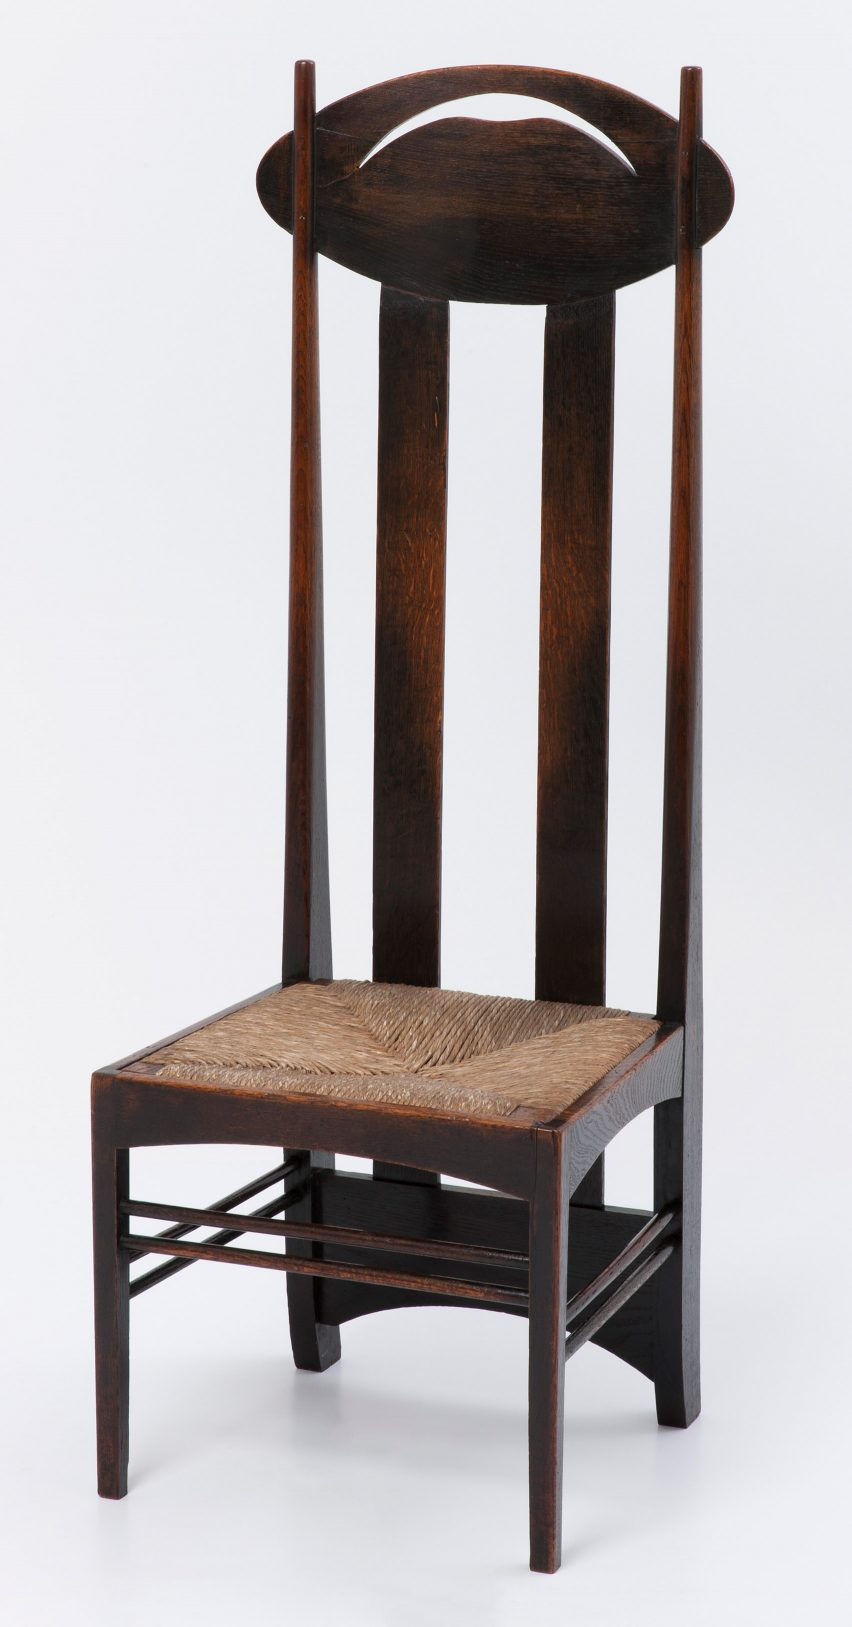 high backed chair fishing bed argos charles rennie mackintosh s argyle was designed to create by